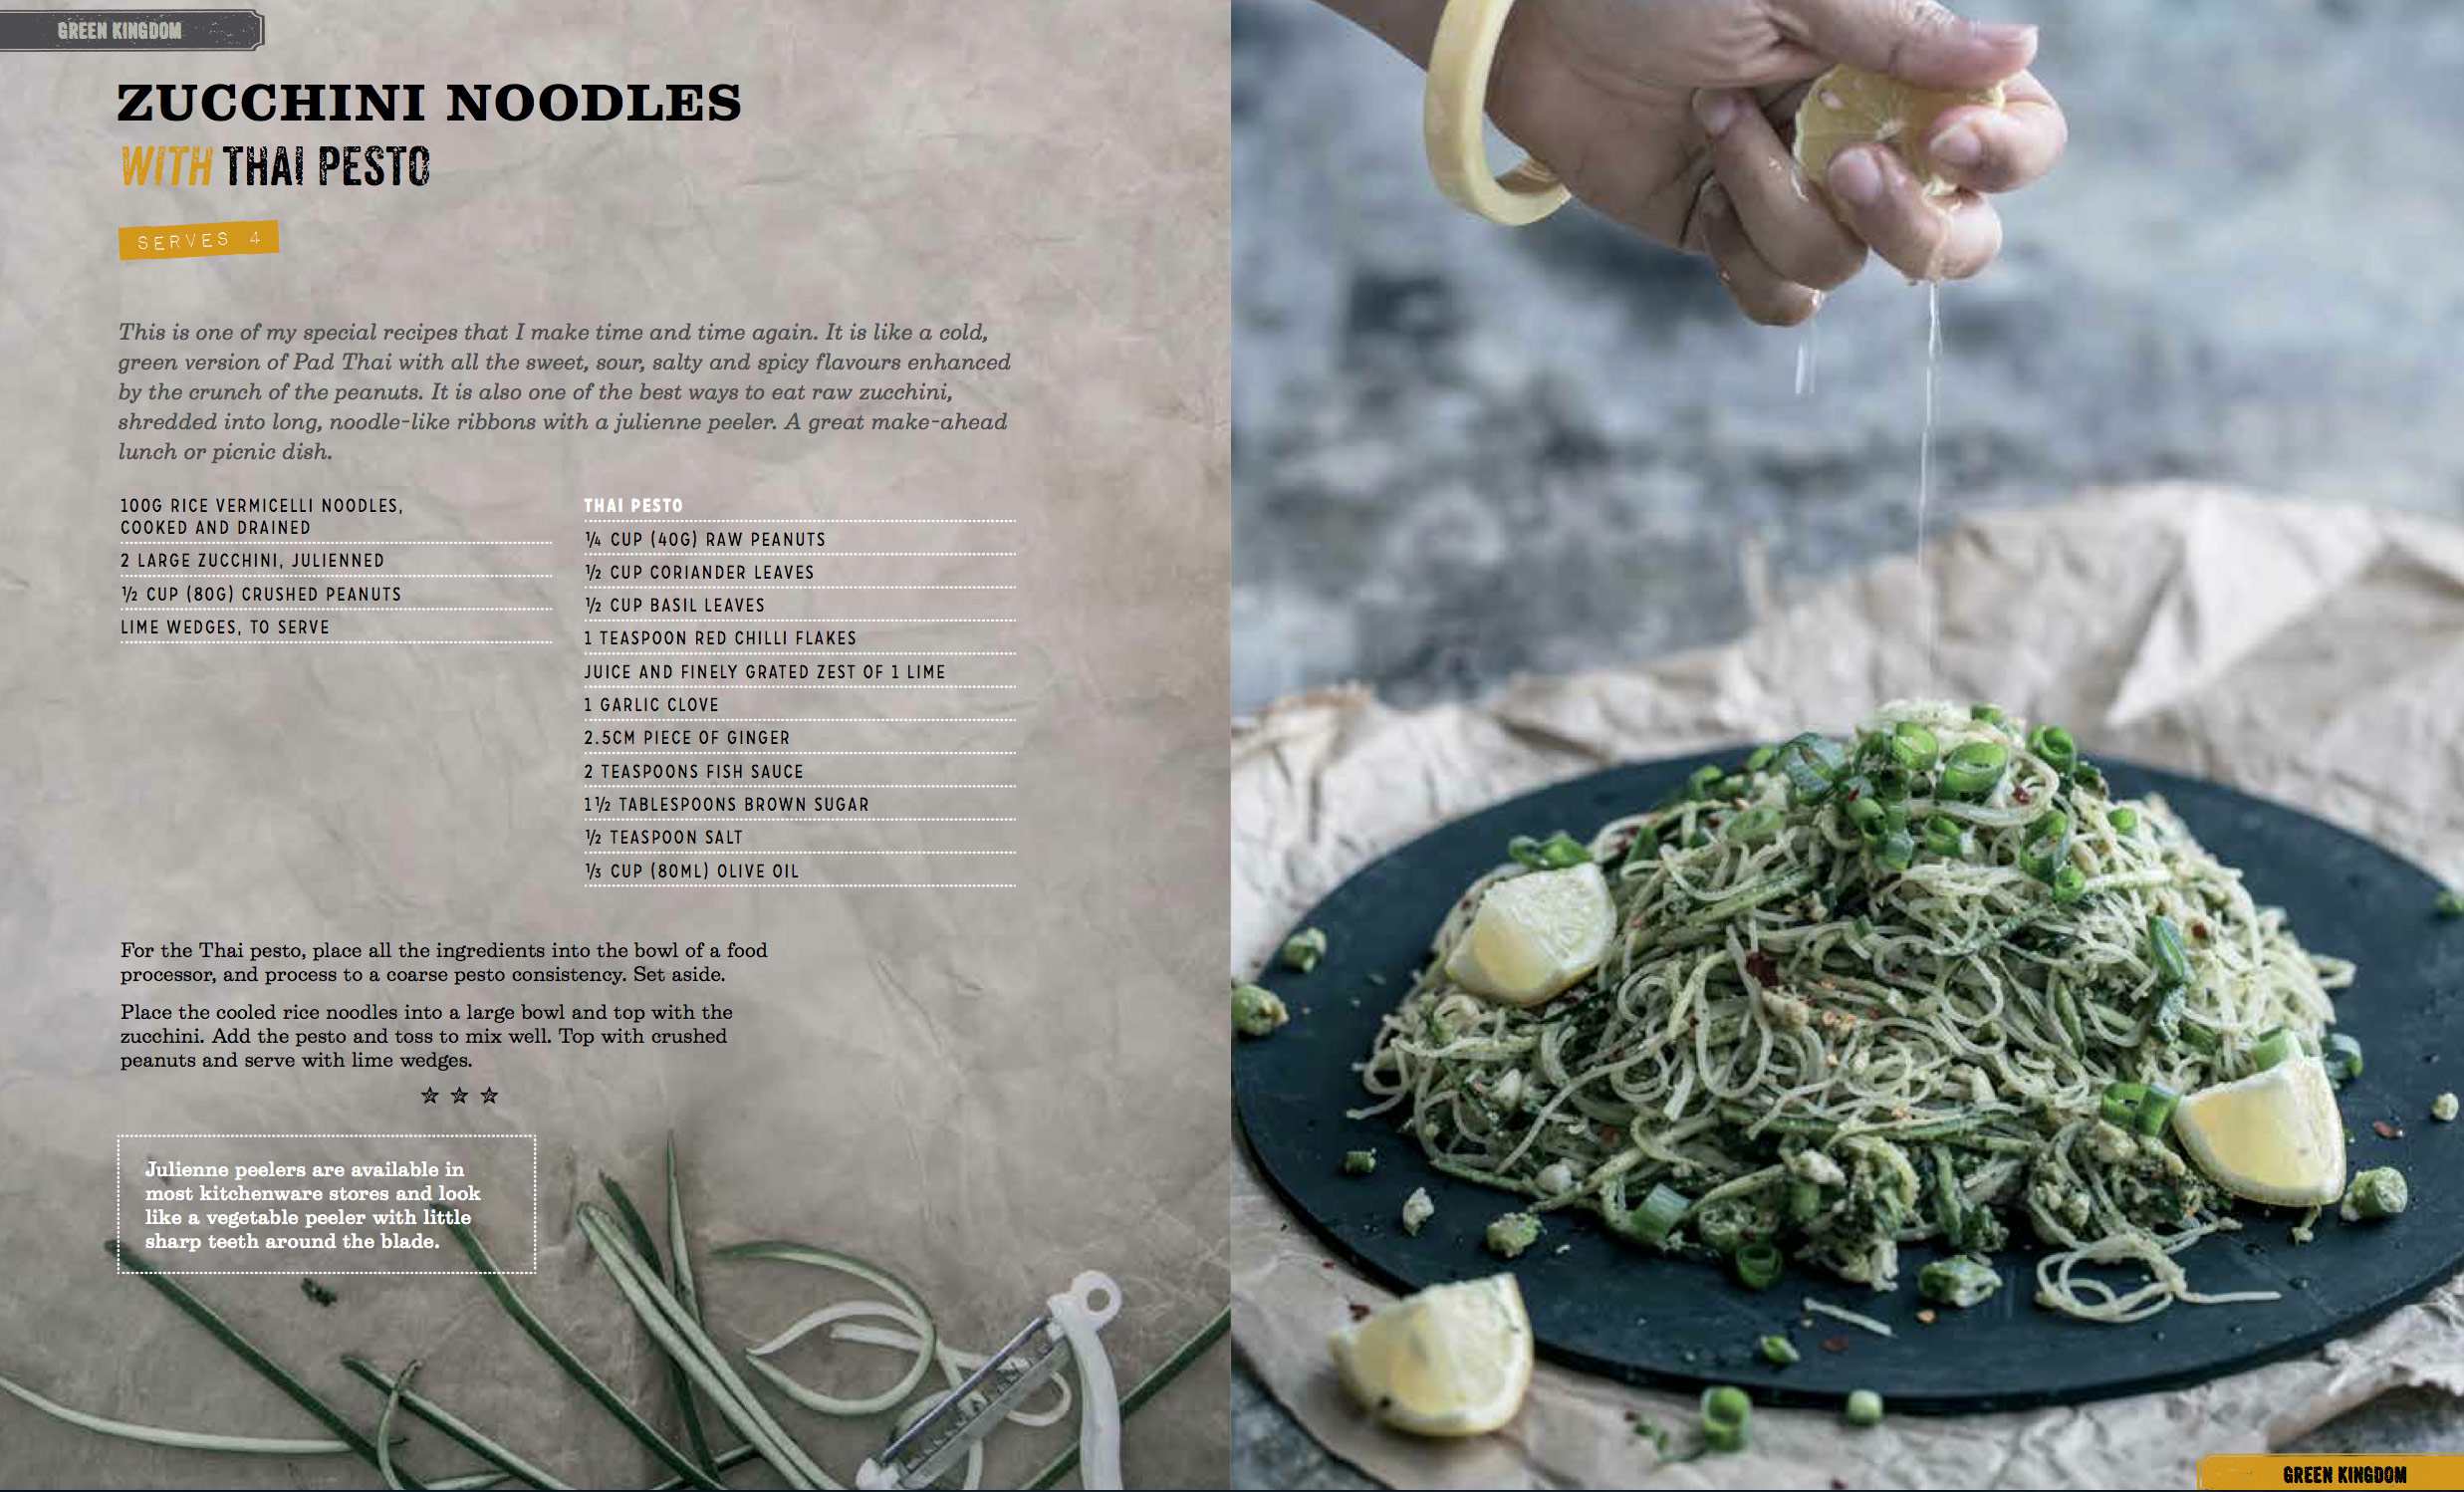 Zucchini Noodles With Thai Pesto - Tasty Express Cookbook